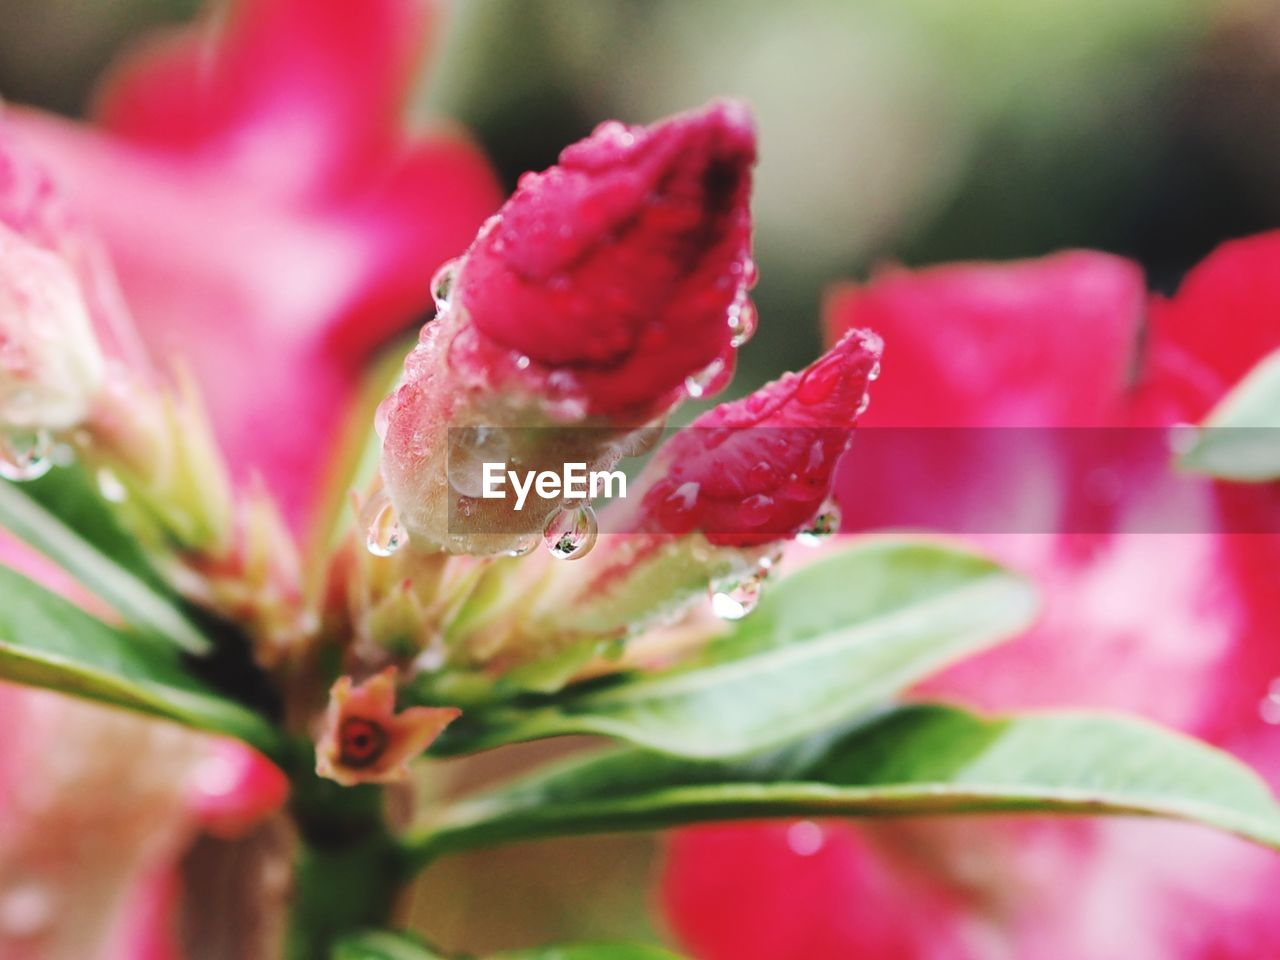 drop, nature, growth, beauty in nature, flower, petal, fragility, water, freshness, wet, plant, pink color, raindrop, no people, selective focus, close-up, rose - flower, flower head, blooming, purity, outdoors, day